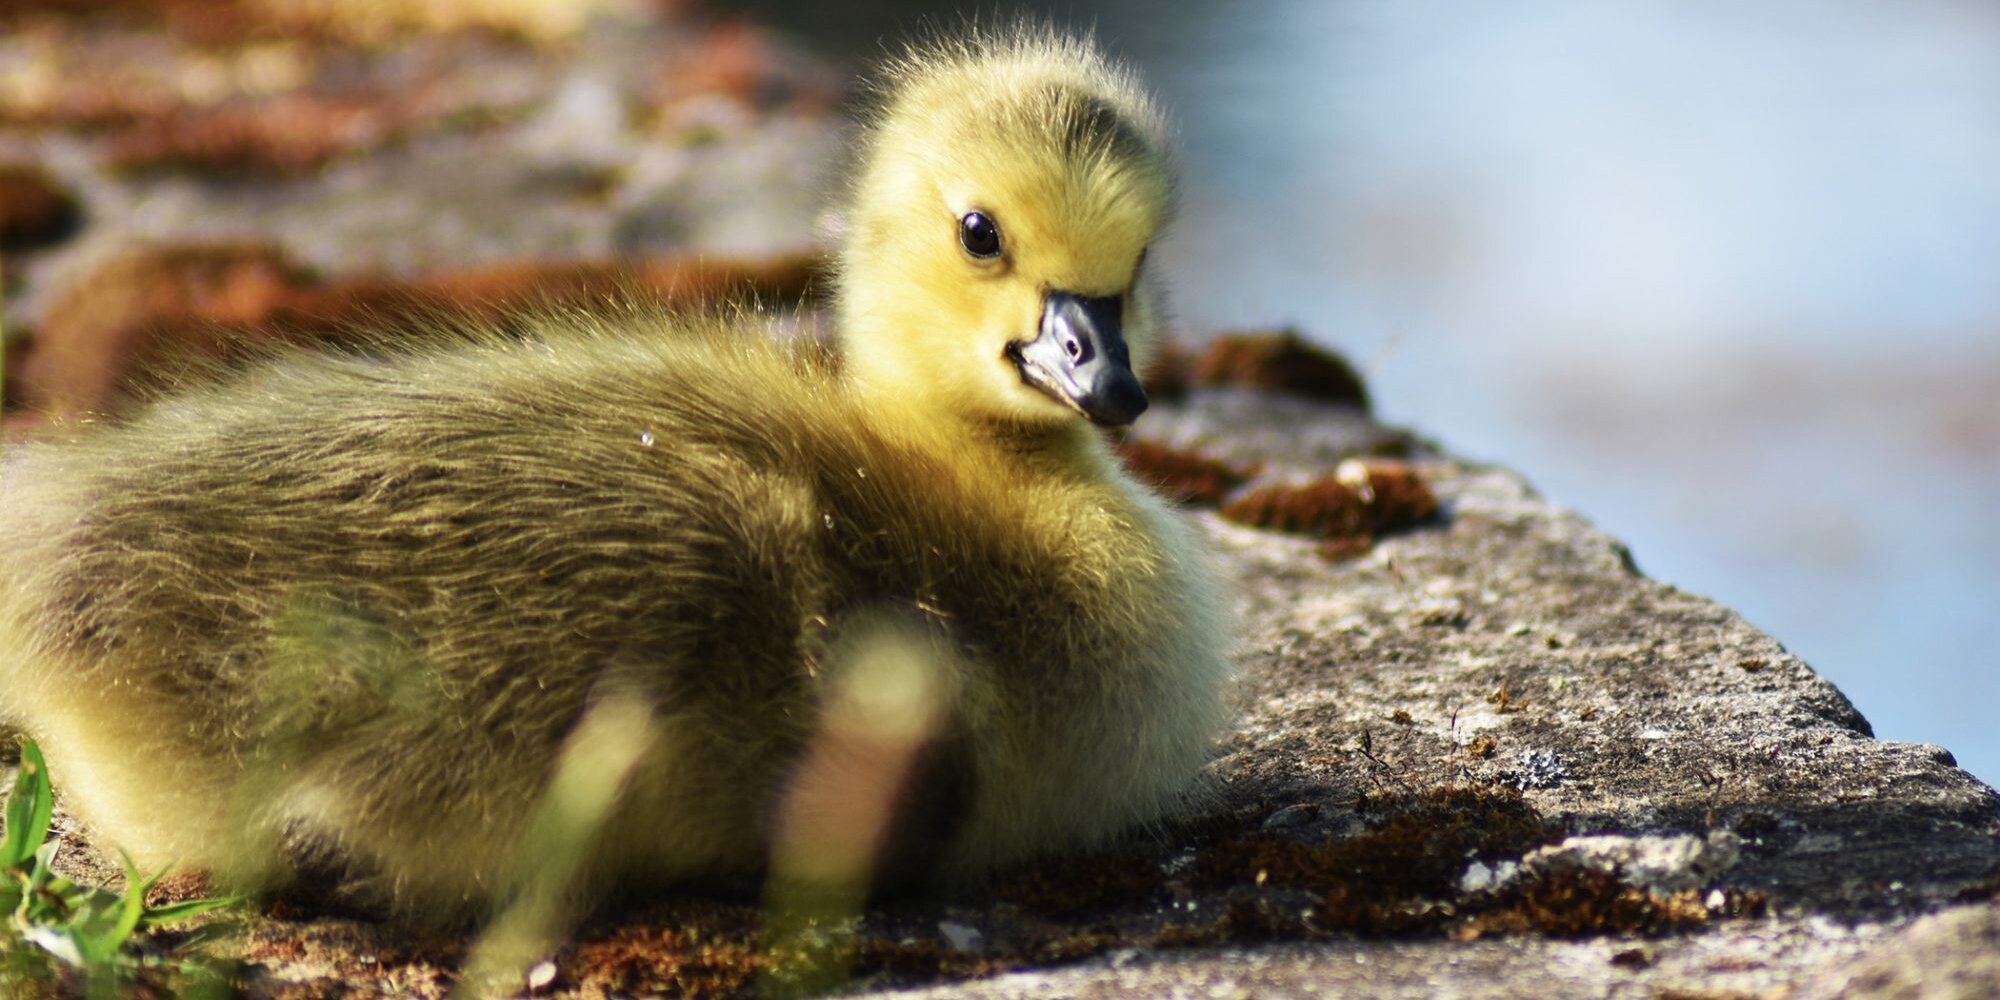 Adorable Viral Video Shows Dog Mom 'Adopting' a Baby Goose